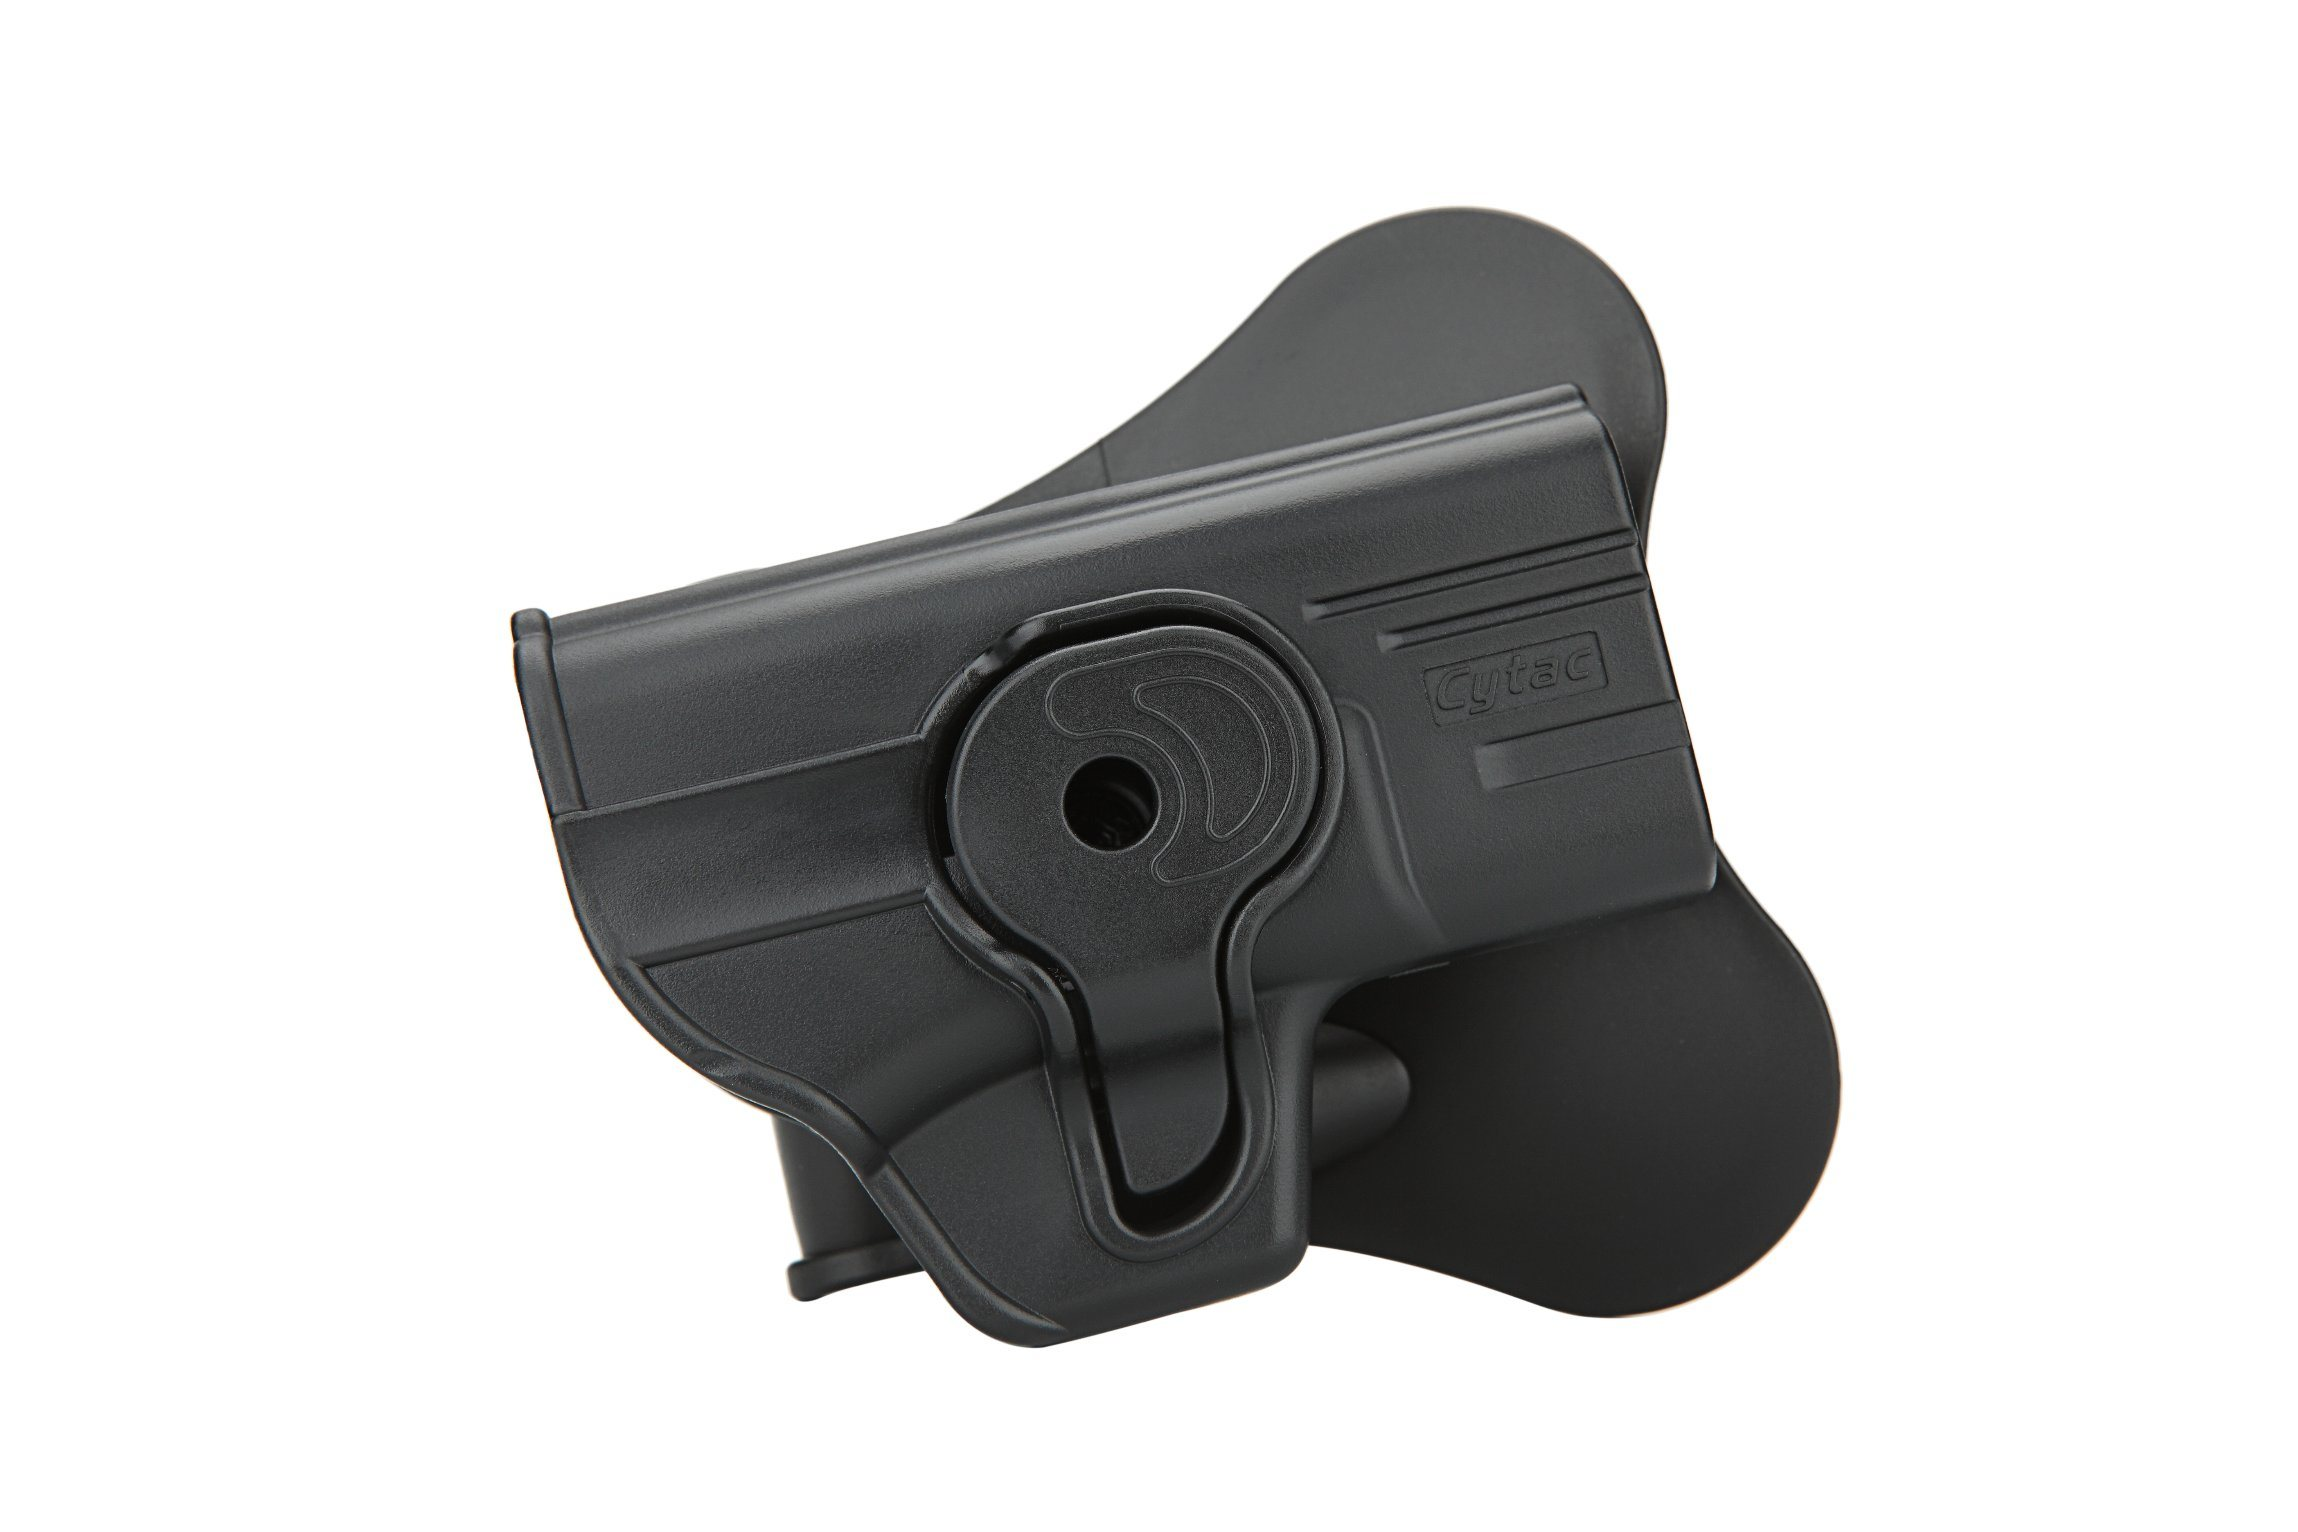 China Cytac Polymer Ruger LC9 with Crimson Trace Laser